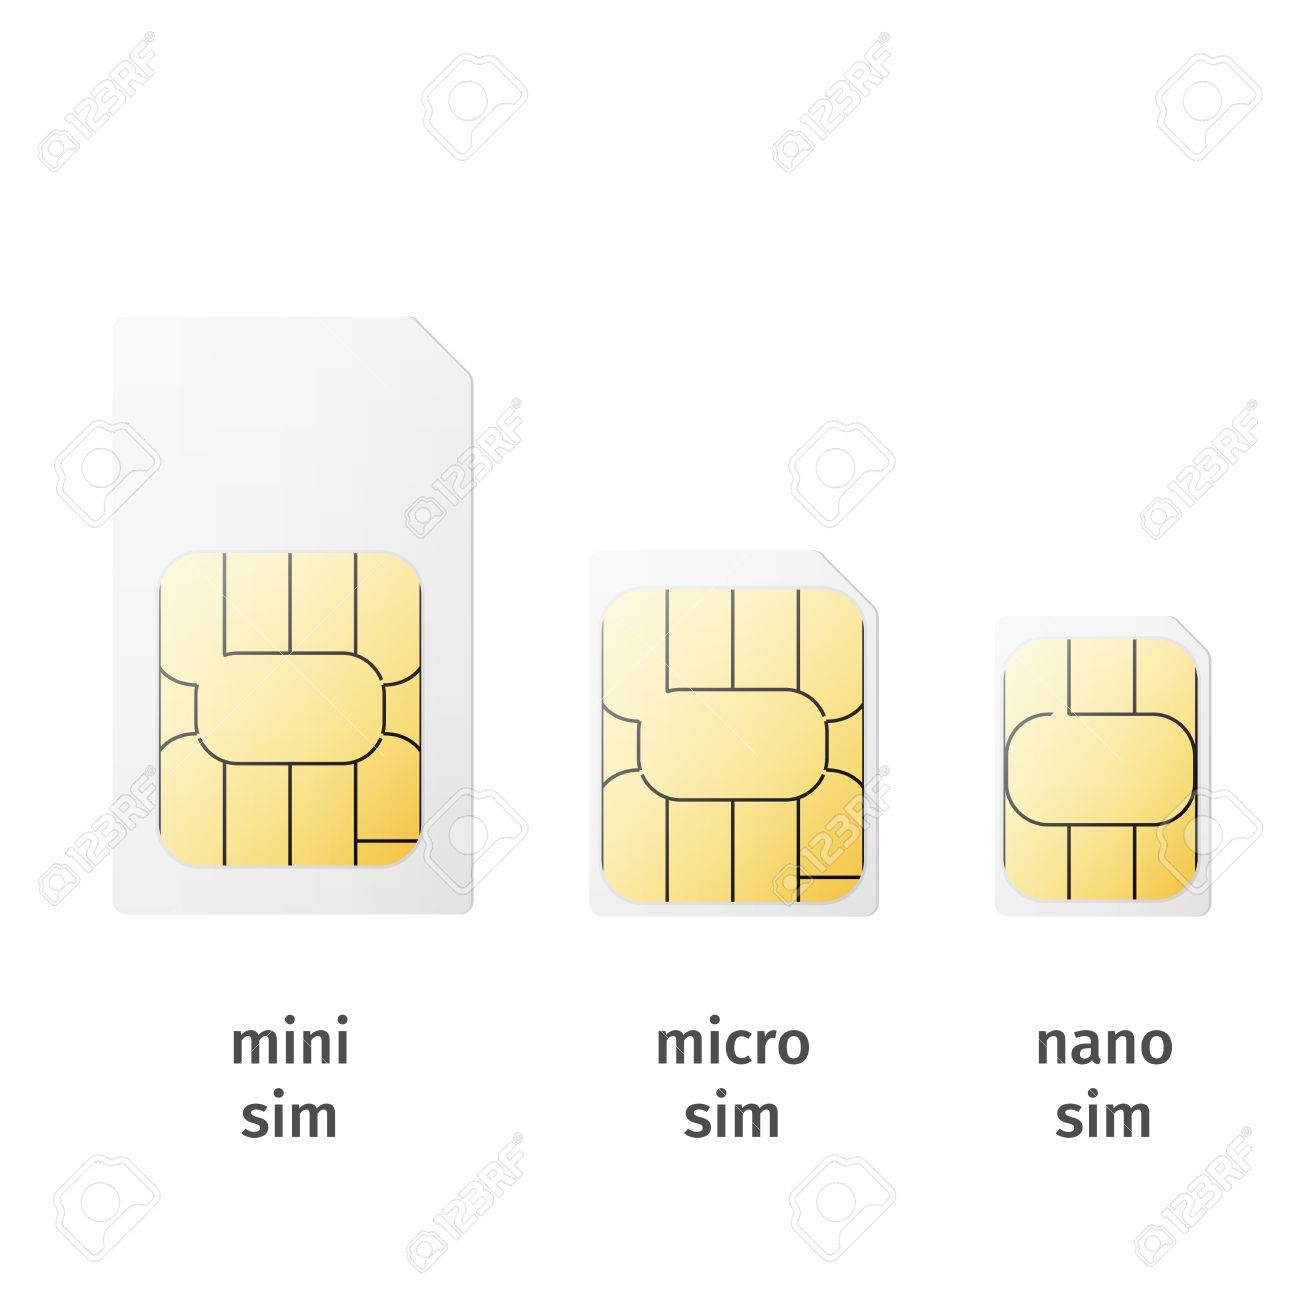 Set Of Sim Cards Of Different Sizesmini Micro Nano Isolated